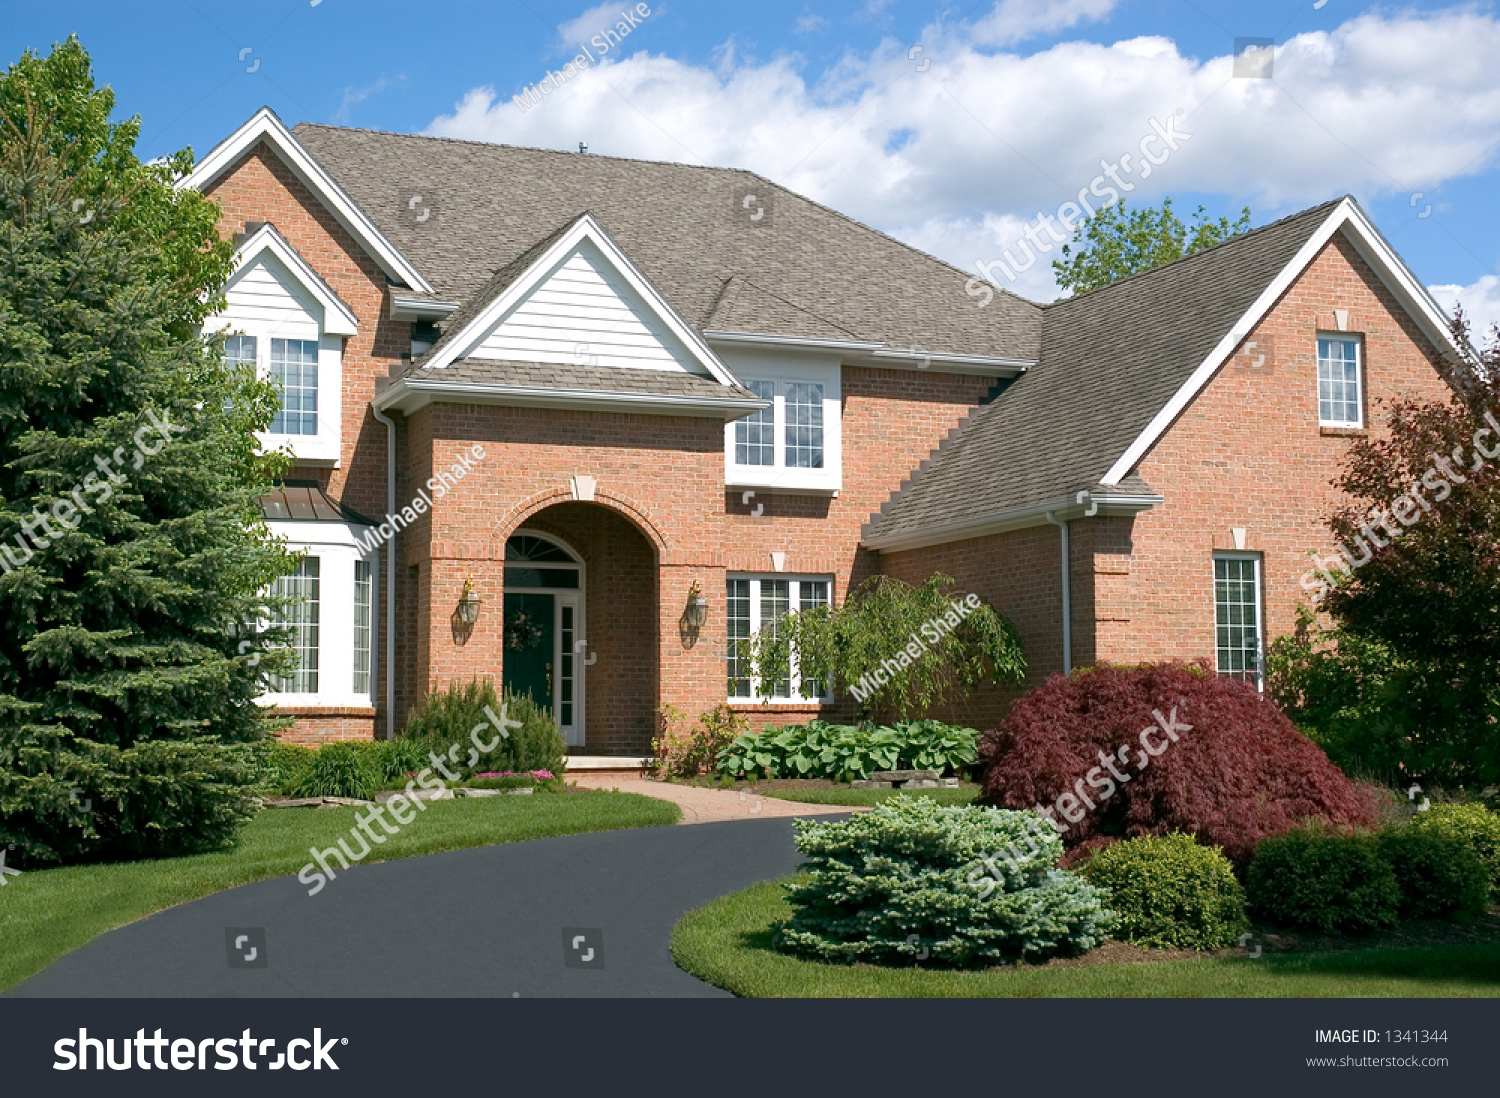 Beautiful brown two story brick home stock photo 1341344 for Beautiful one story homes